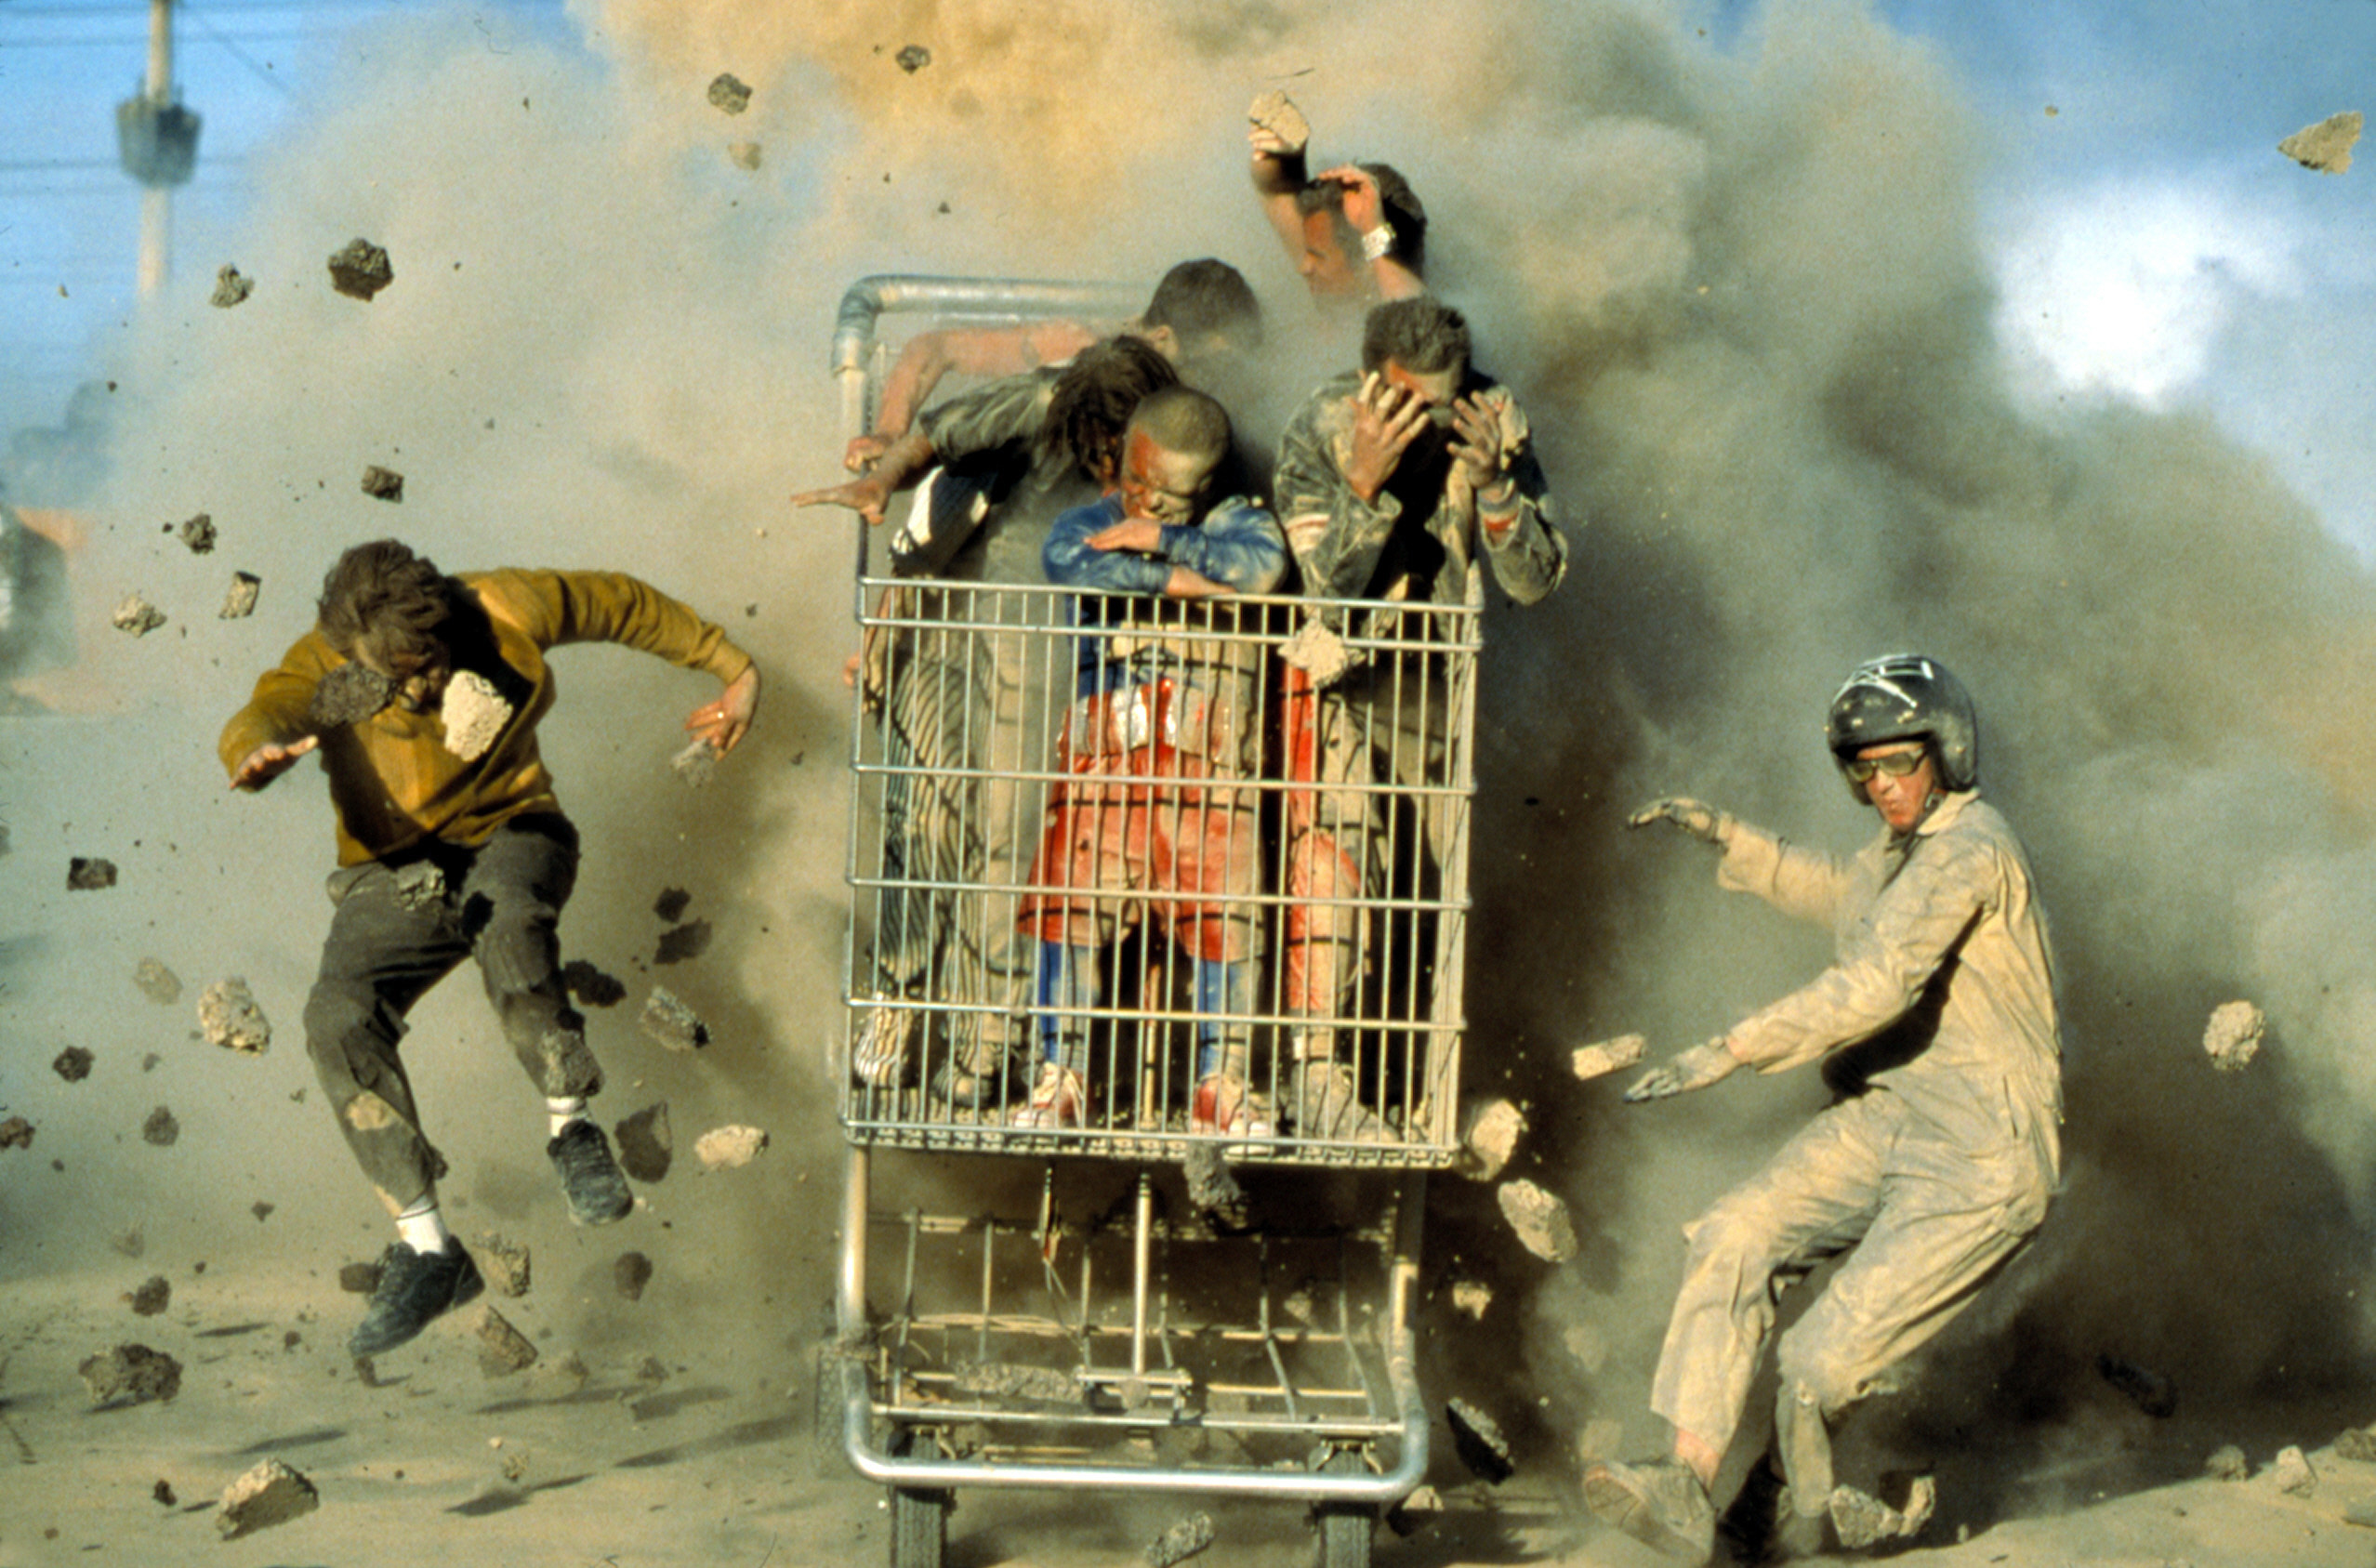 Cast of Jackass in a giant shopping cart in an explosion